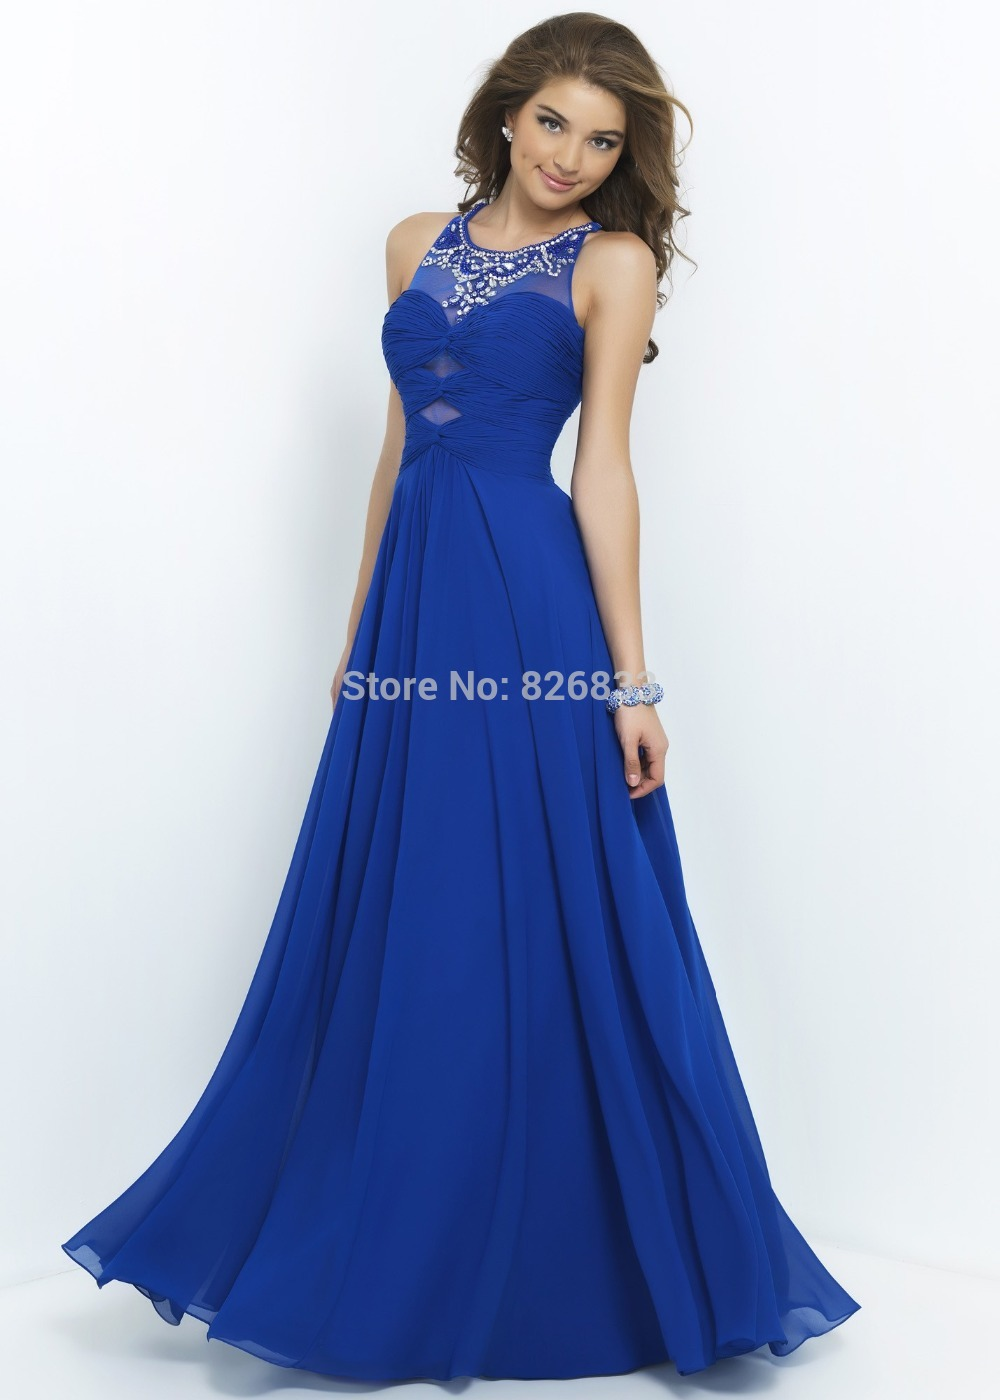 Lilac Royal Blue Long Fitted Corset Prom Dress With Beaded Halter ...